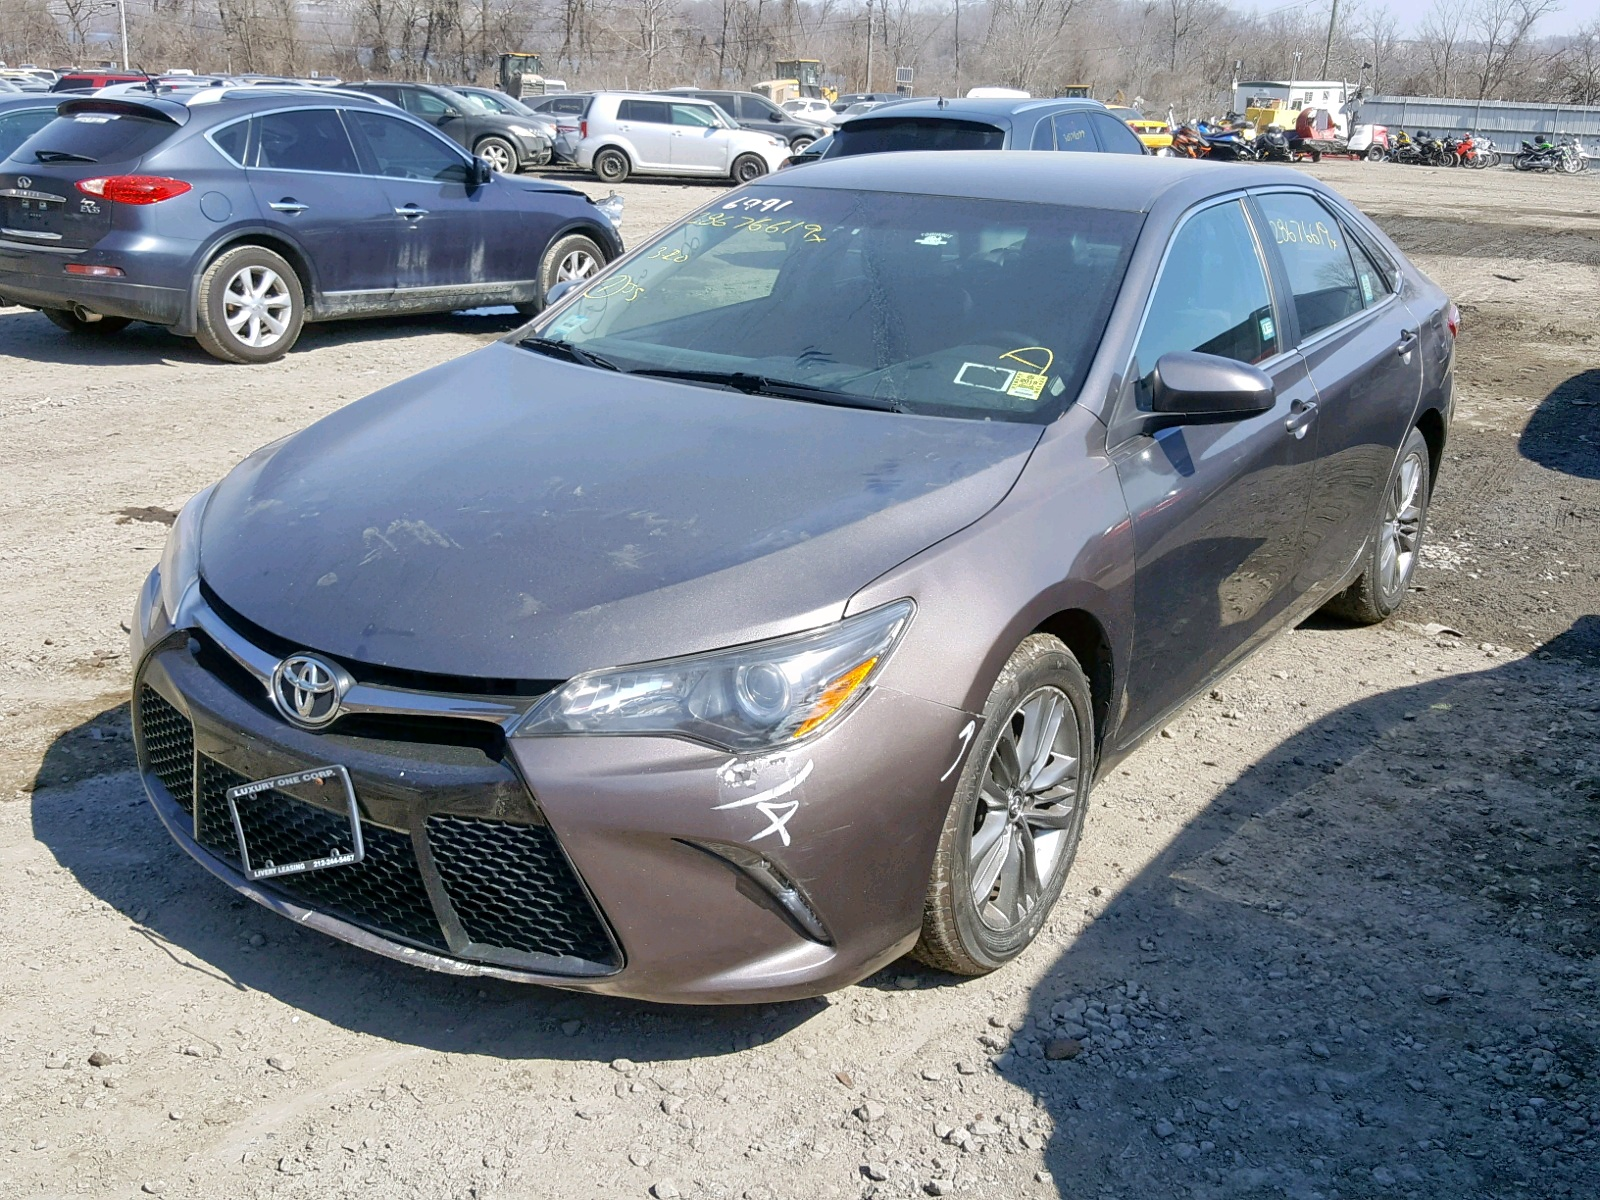 2015 Toyota Camry Le 2.5L Right View